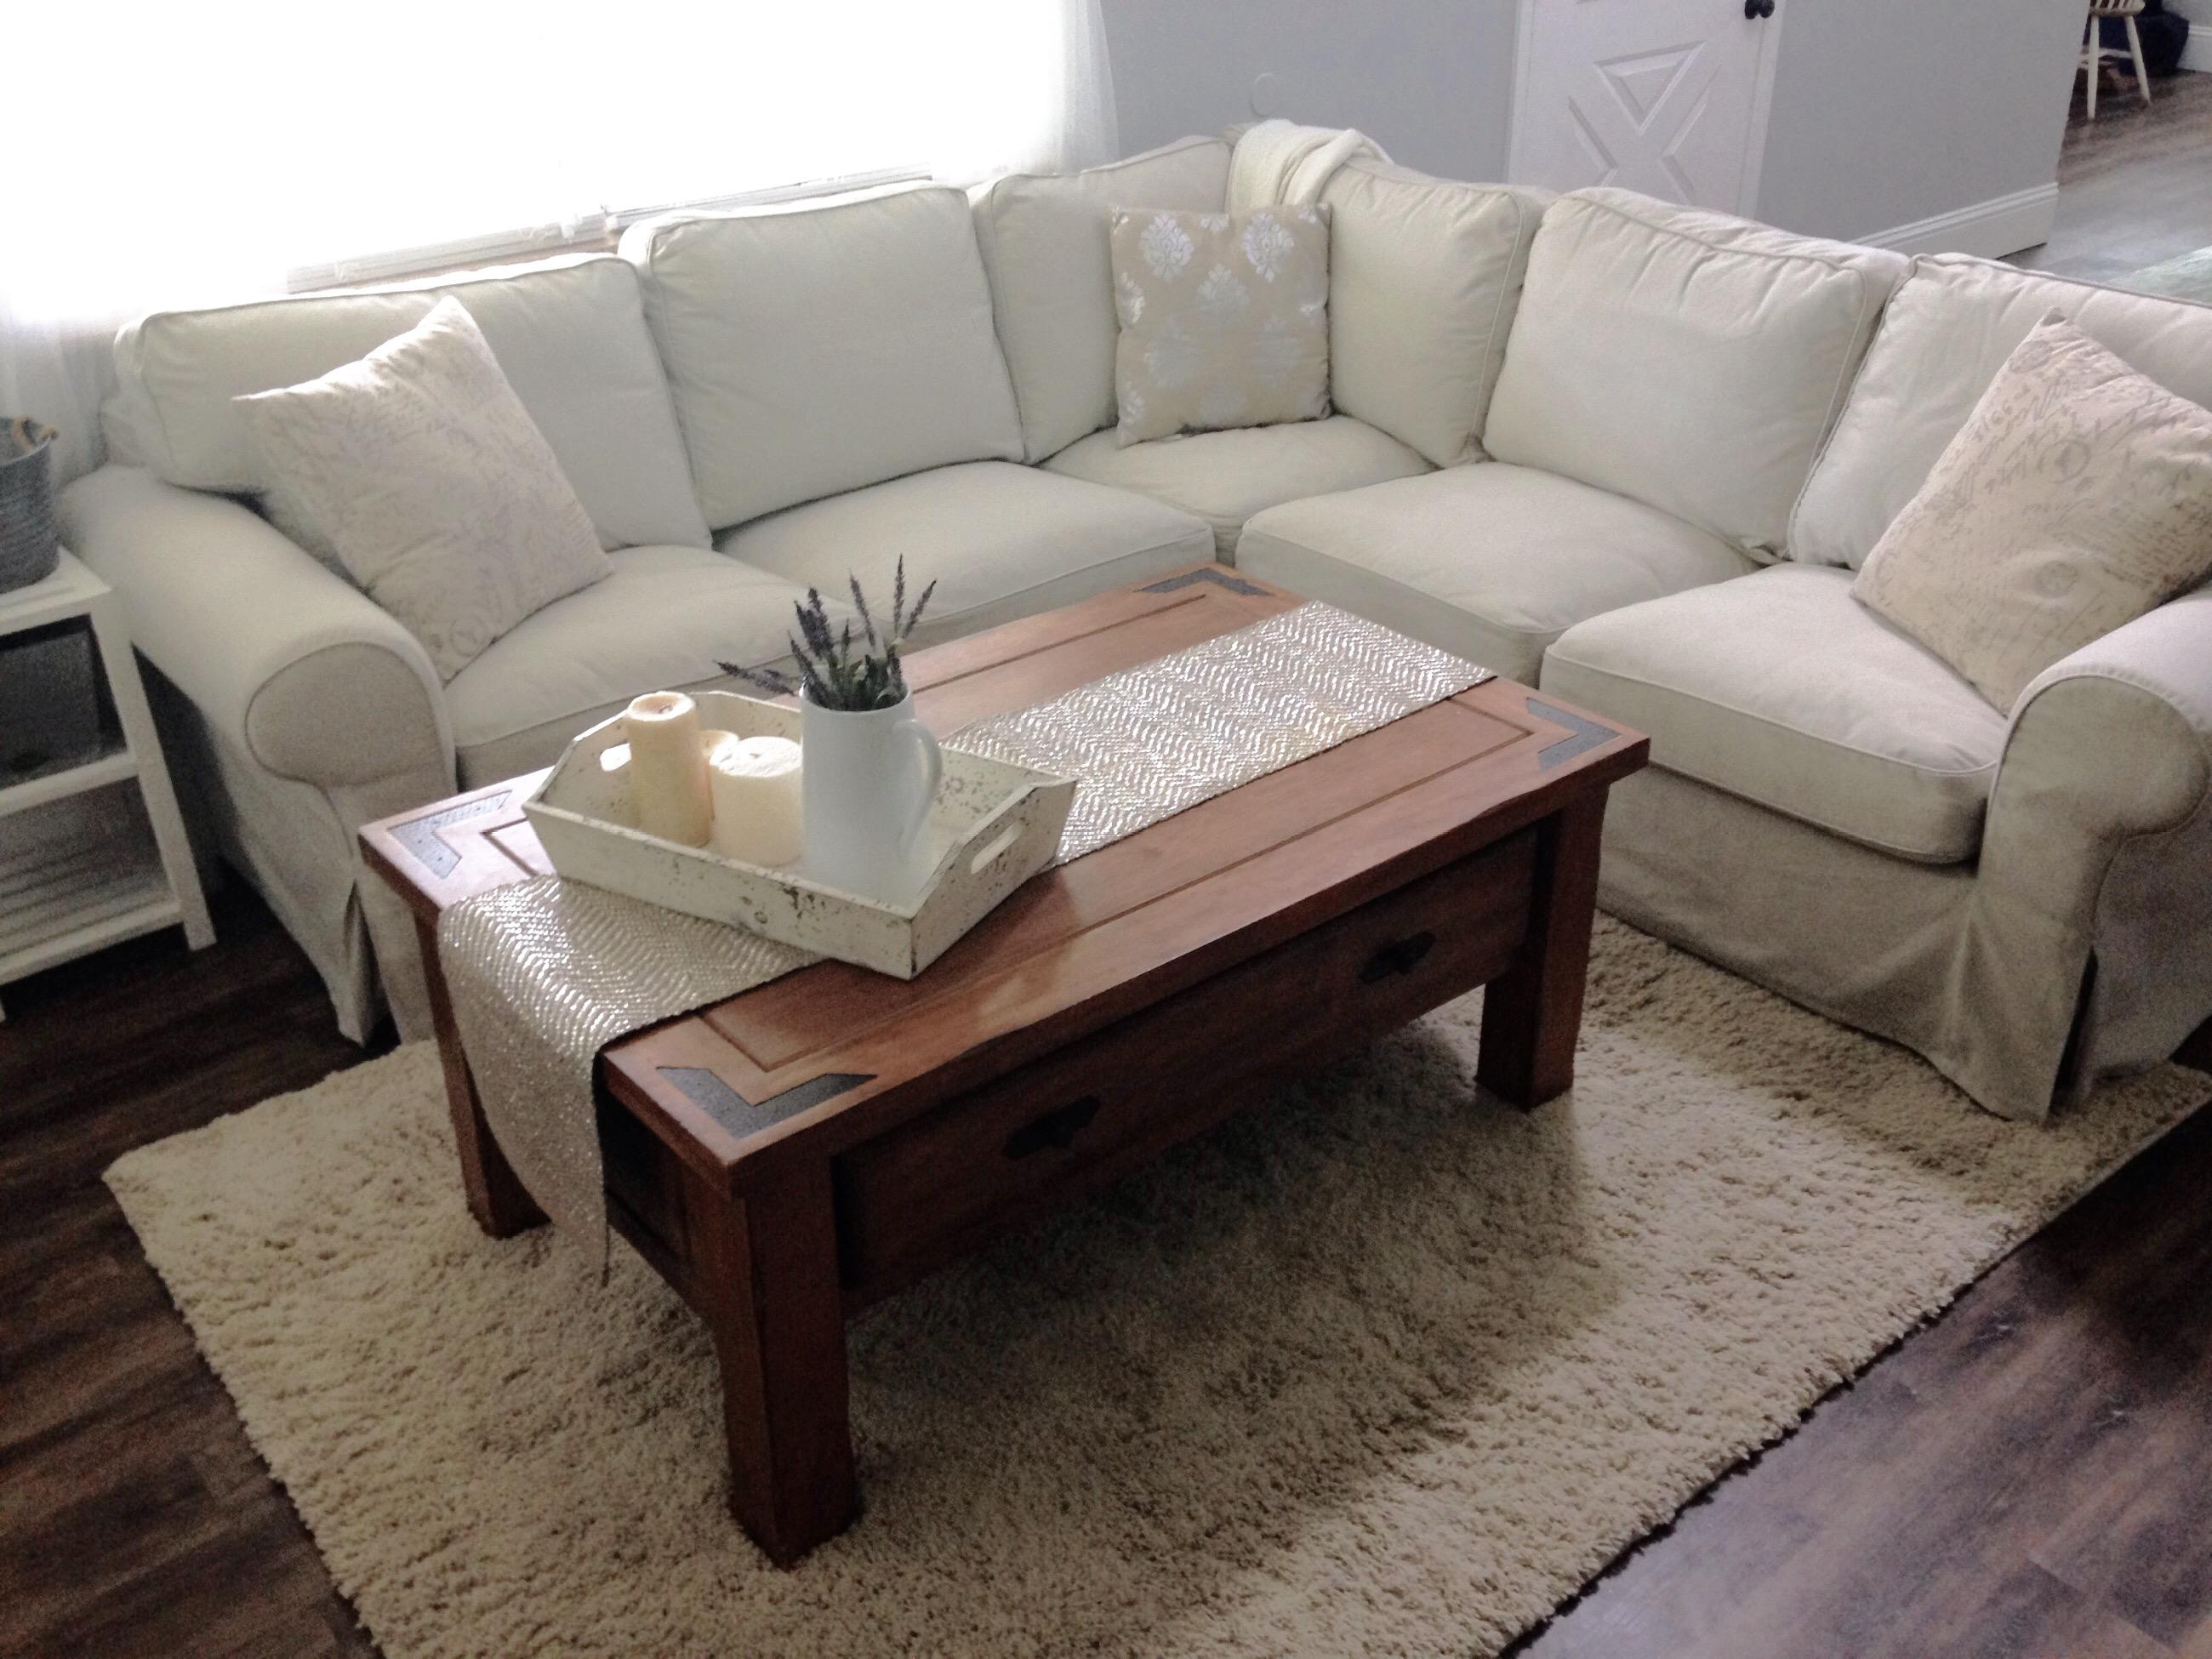 bernie sofas phyls couches sectional piece furniture radley costco sofa